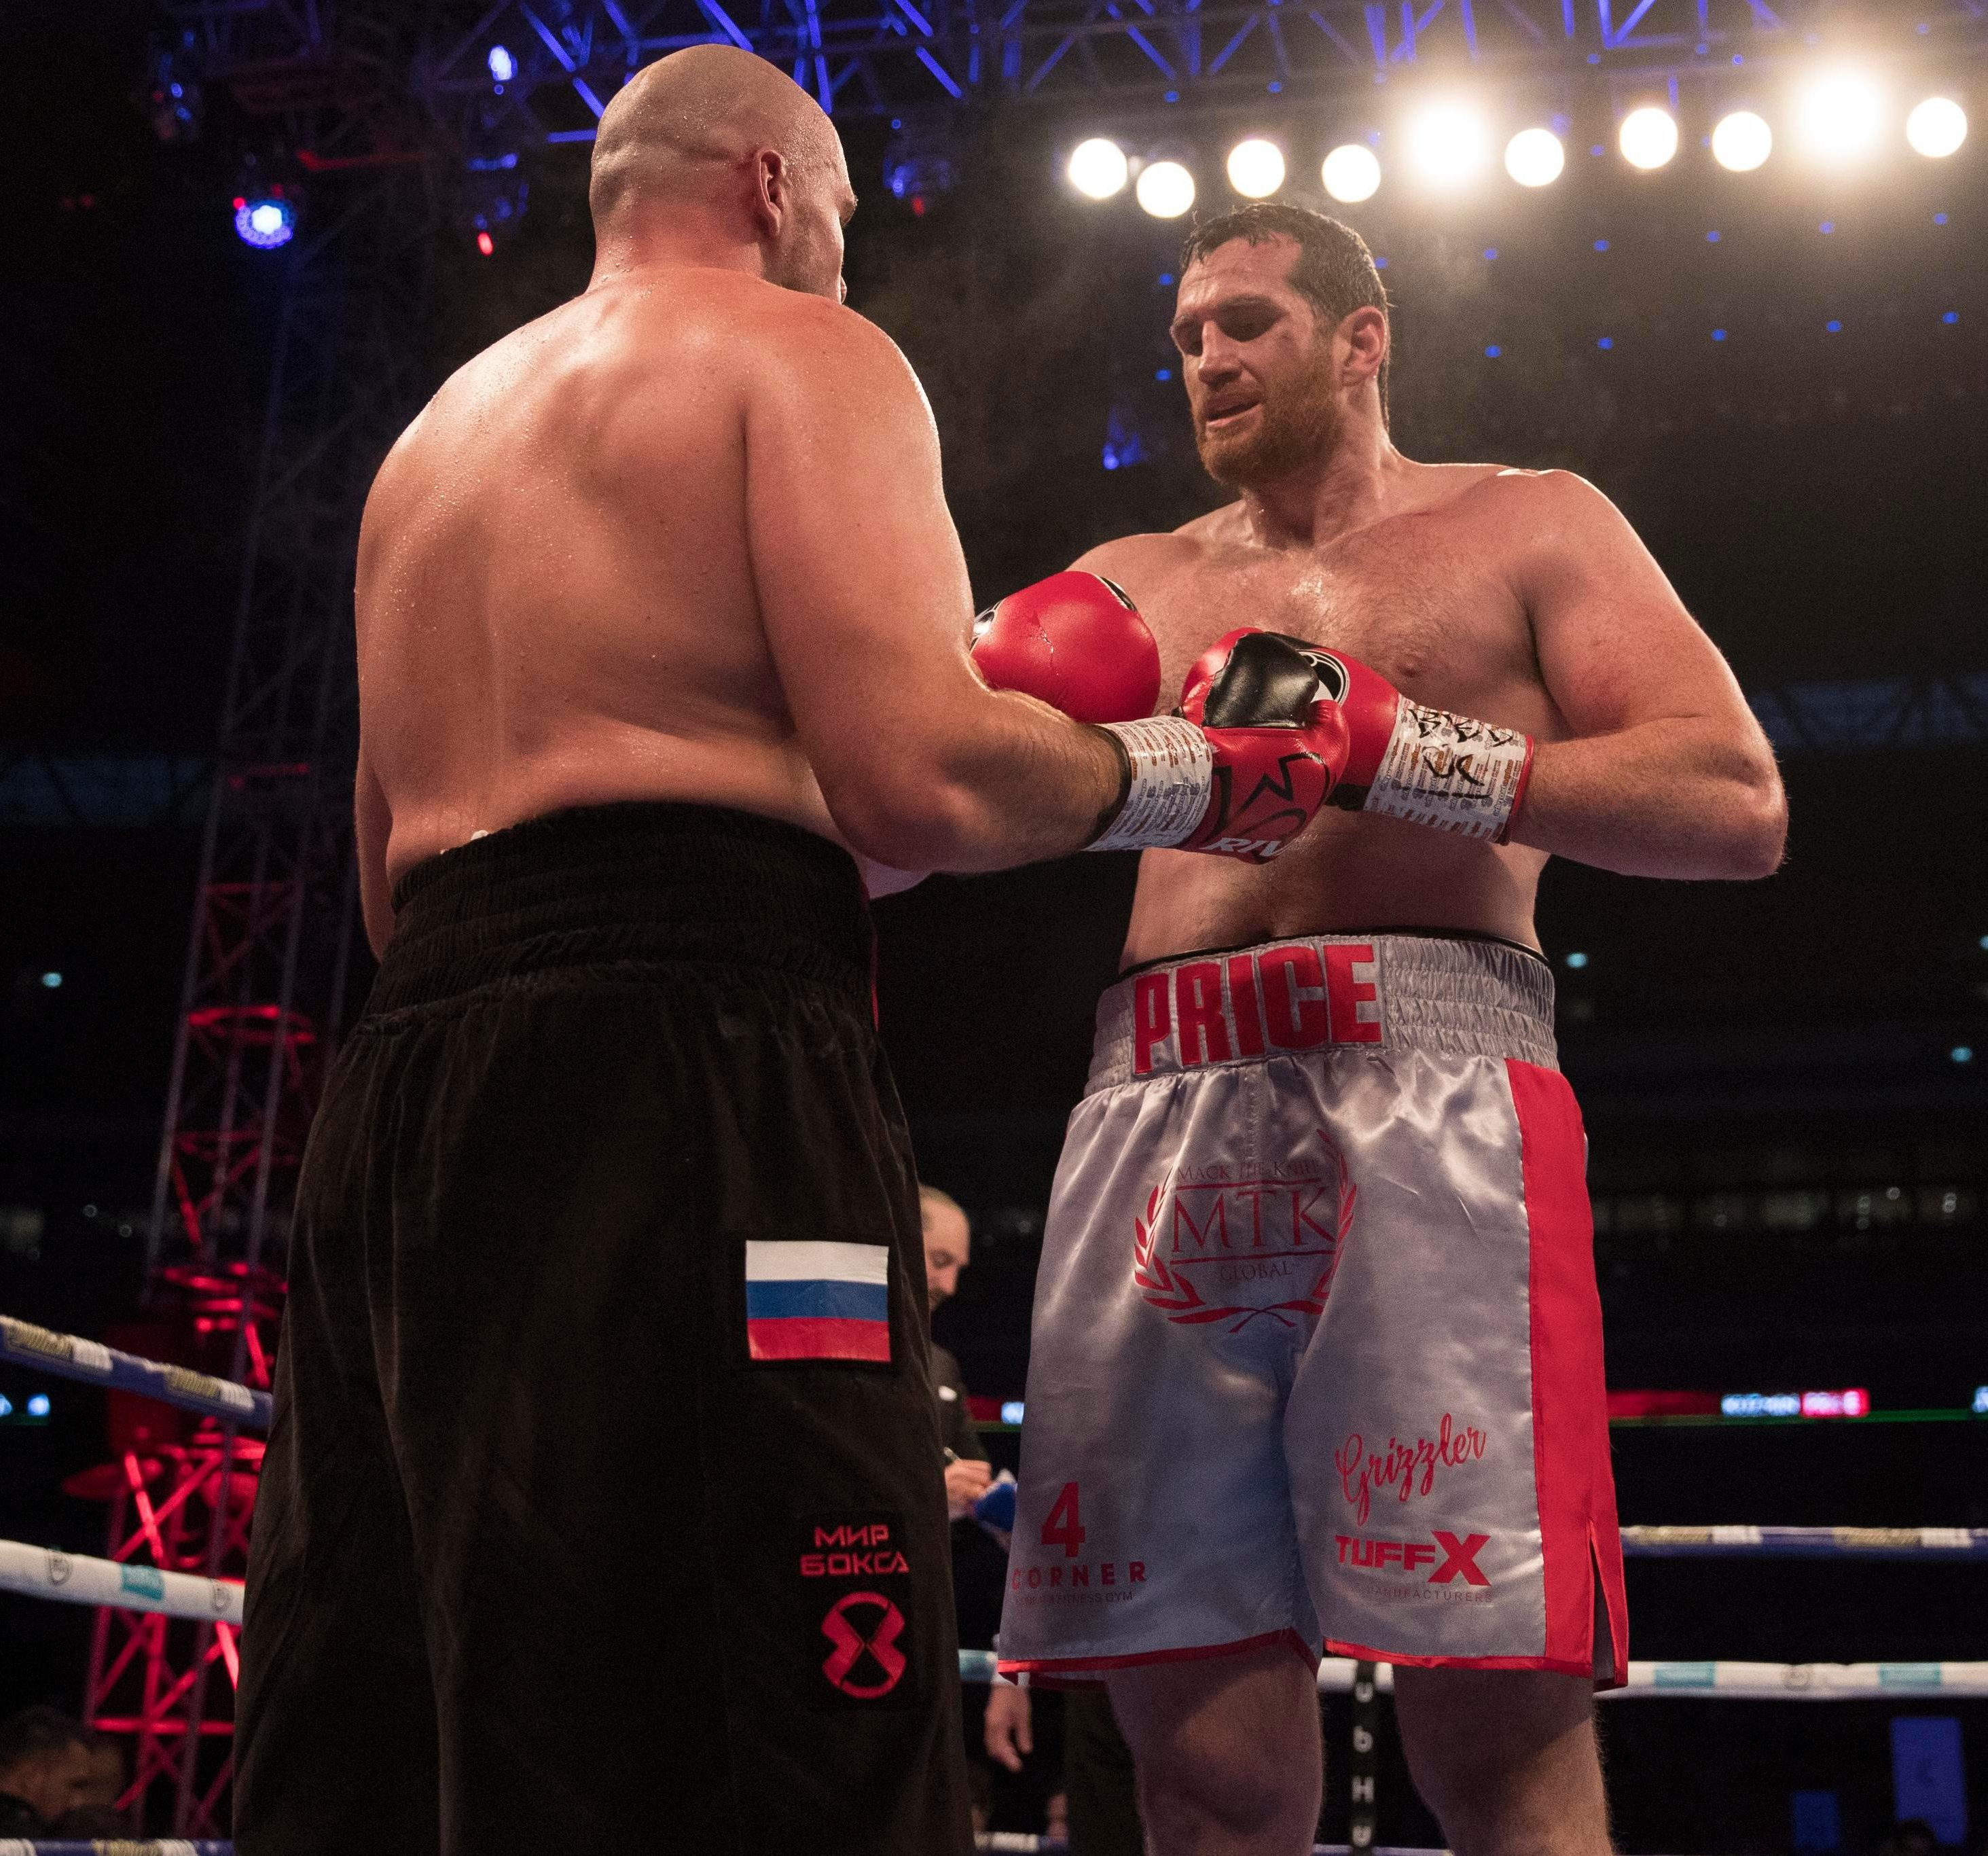 David Price retired due to injury at the end of the fourth round against Sergey Kuzmin